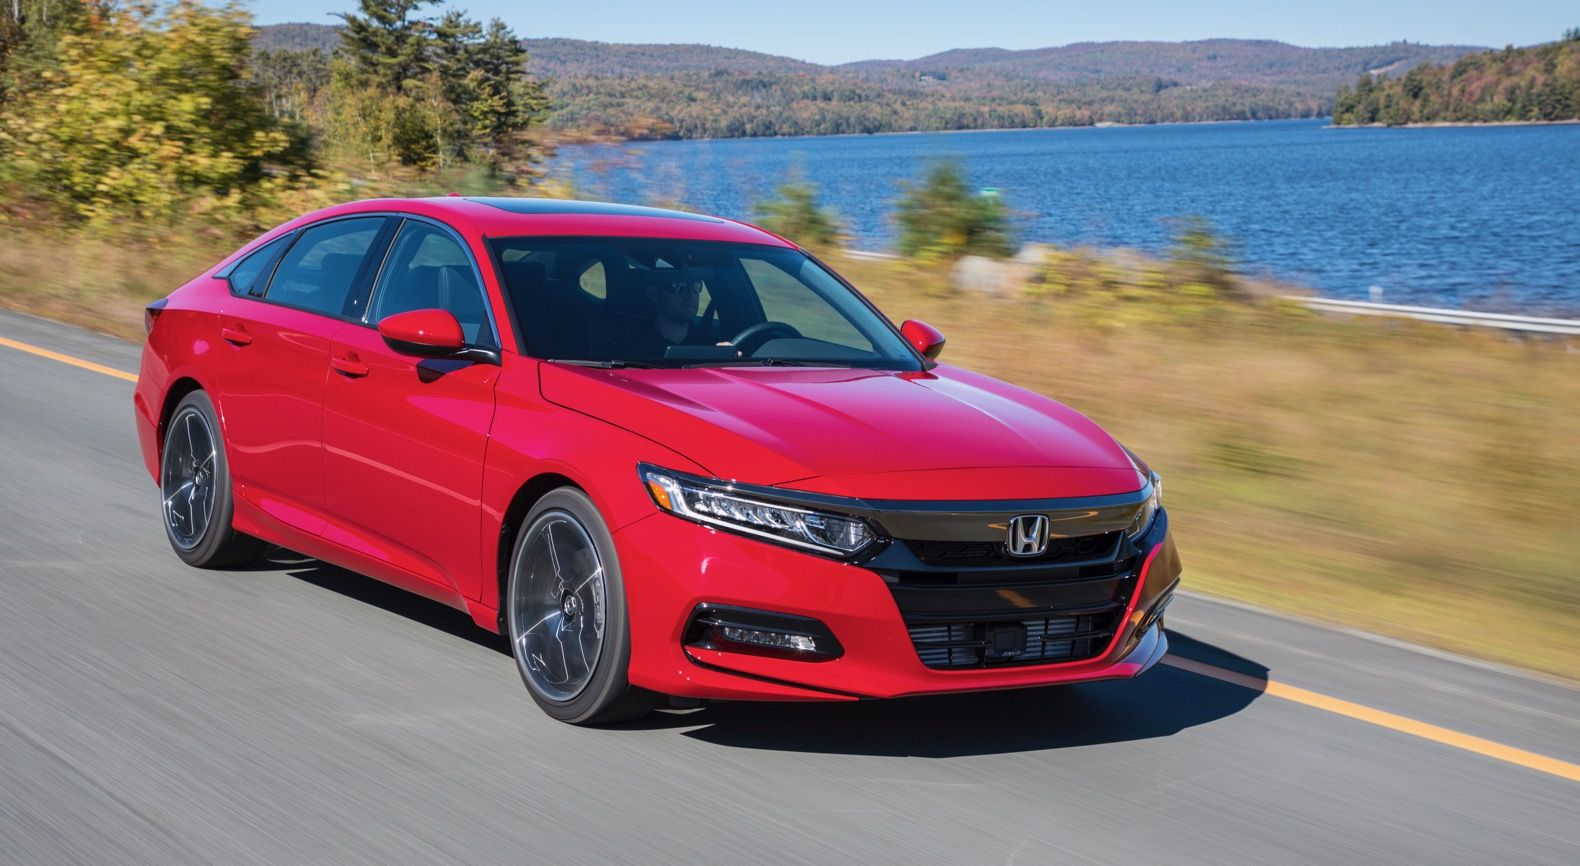 2018 Honda Accord Sport 2.0T Review A fun midsize sedan